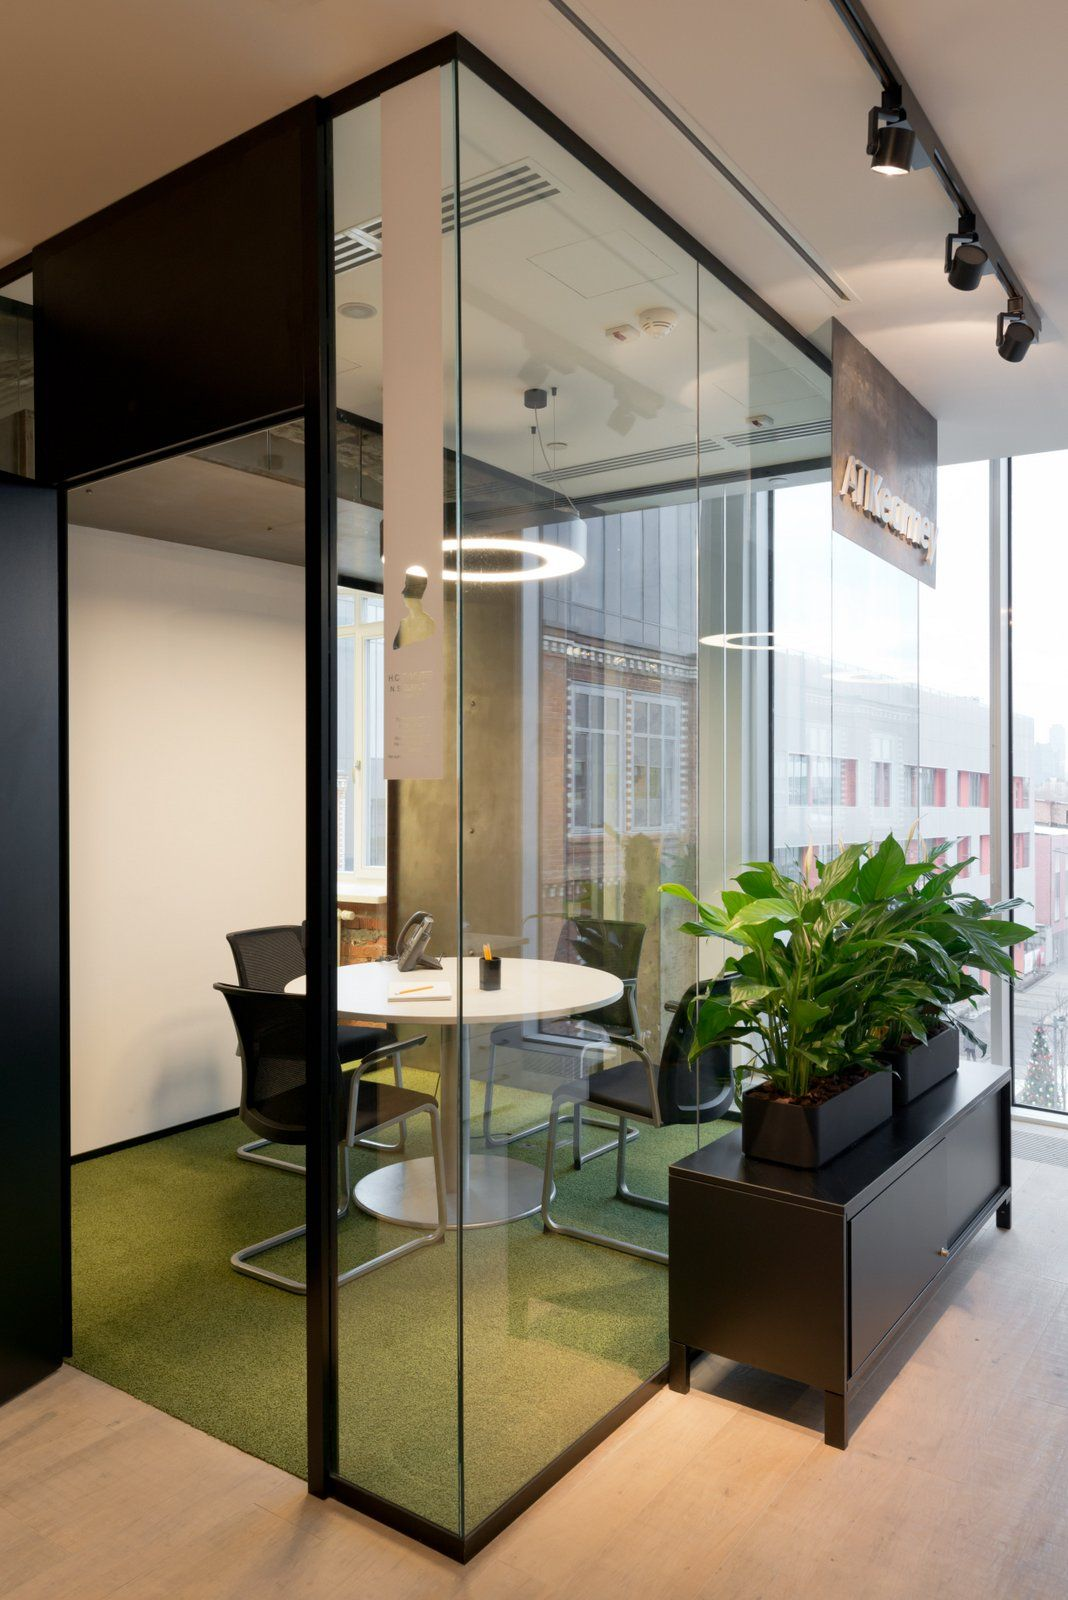 Telecommunication Room Design: Office Tour: A.T. Kearney Offices – Moscow